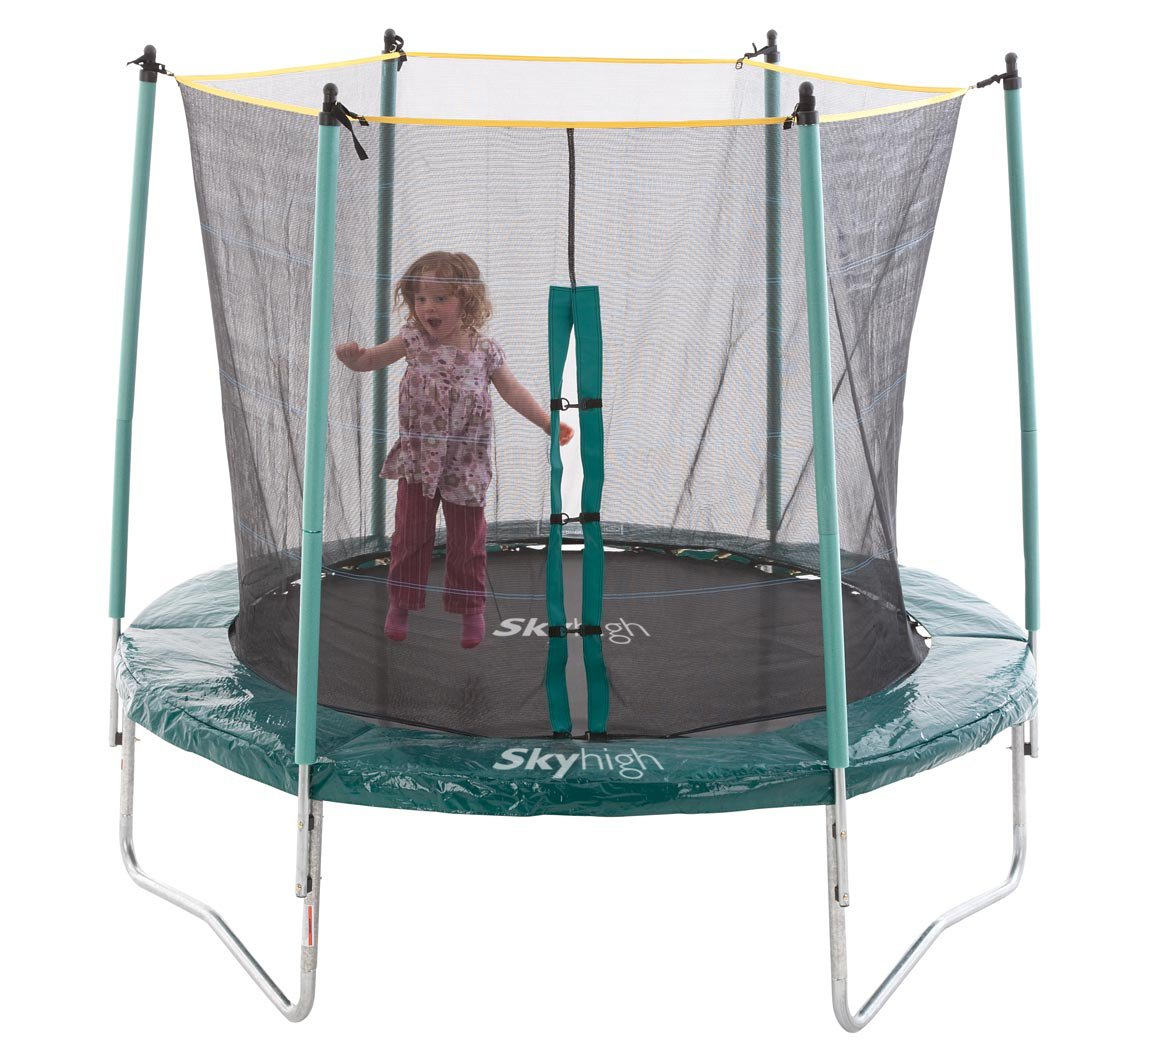 8ft Trampoline With Safety Enclosure. Exciting Bounce With